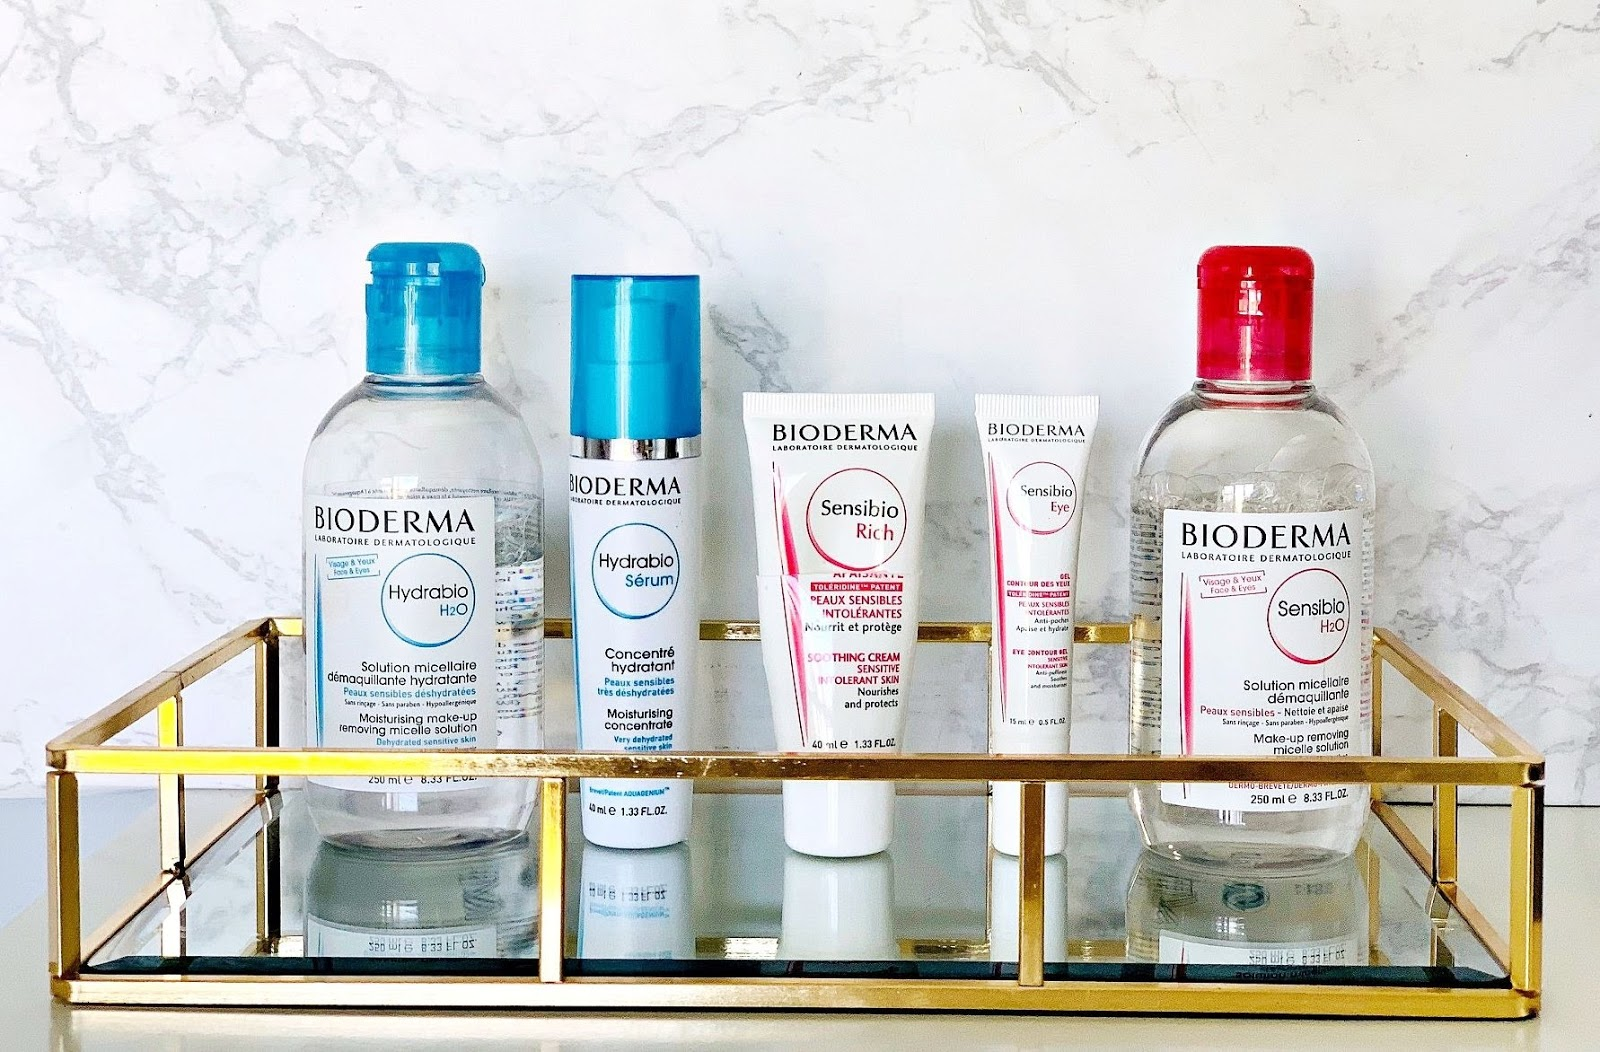 Review: Bioderma skincare